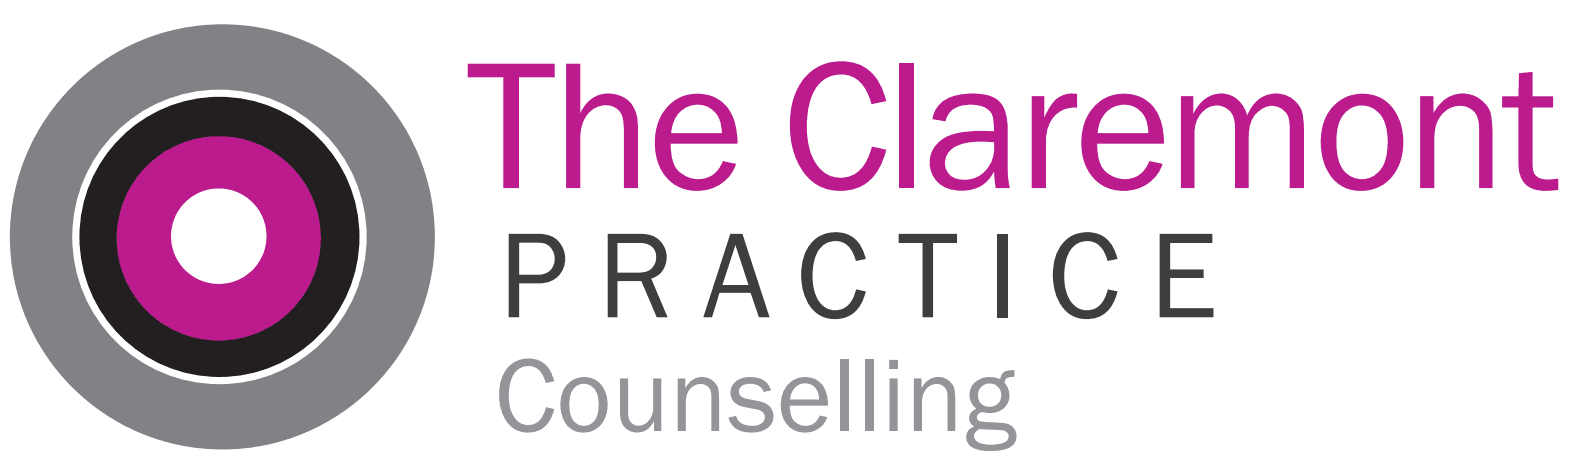 The claremont practise logo